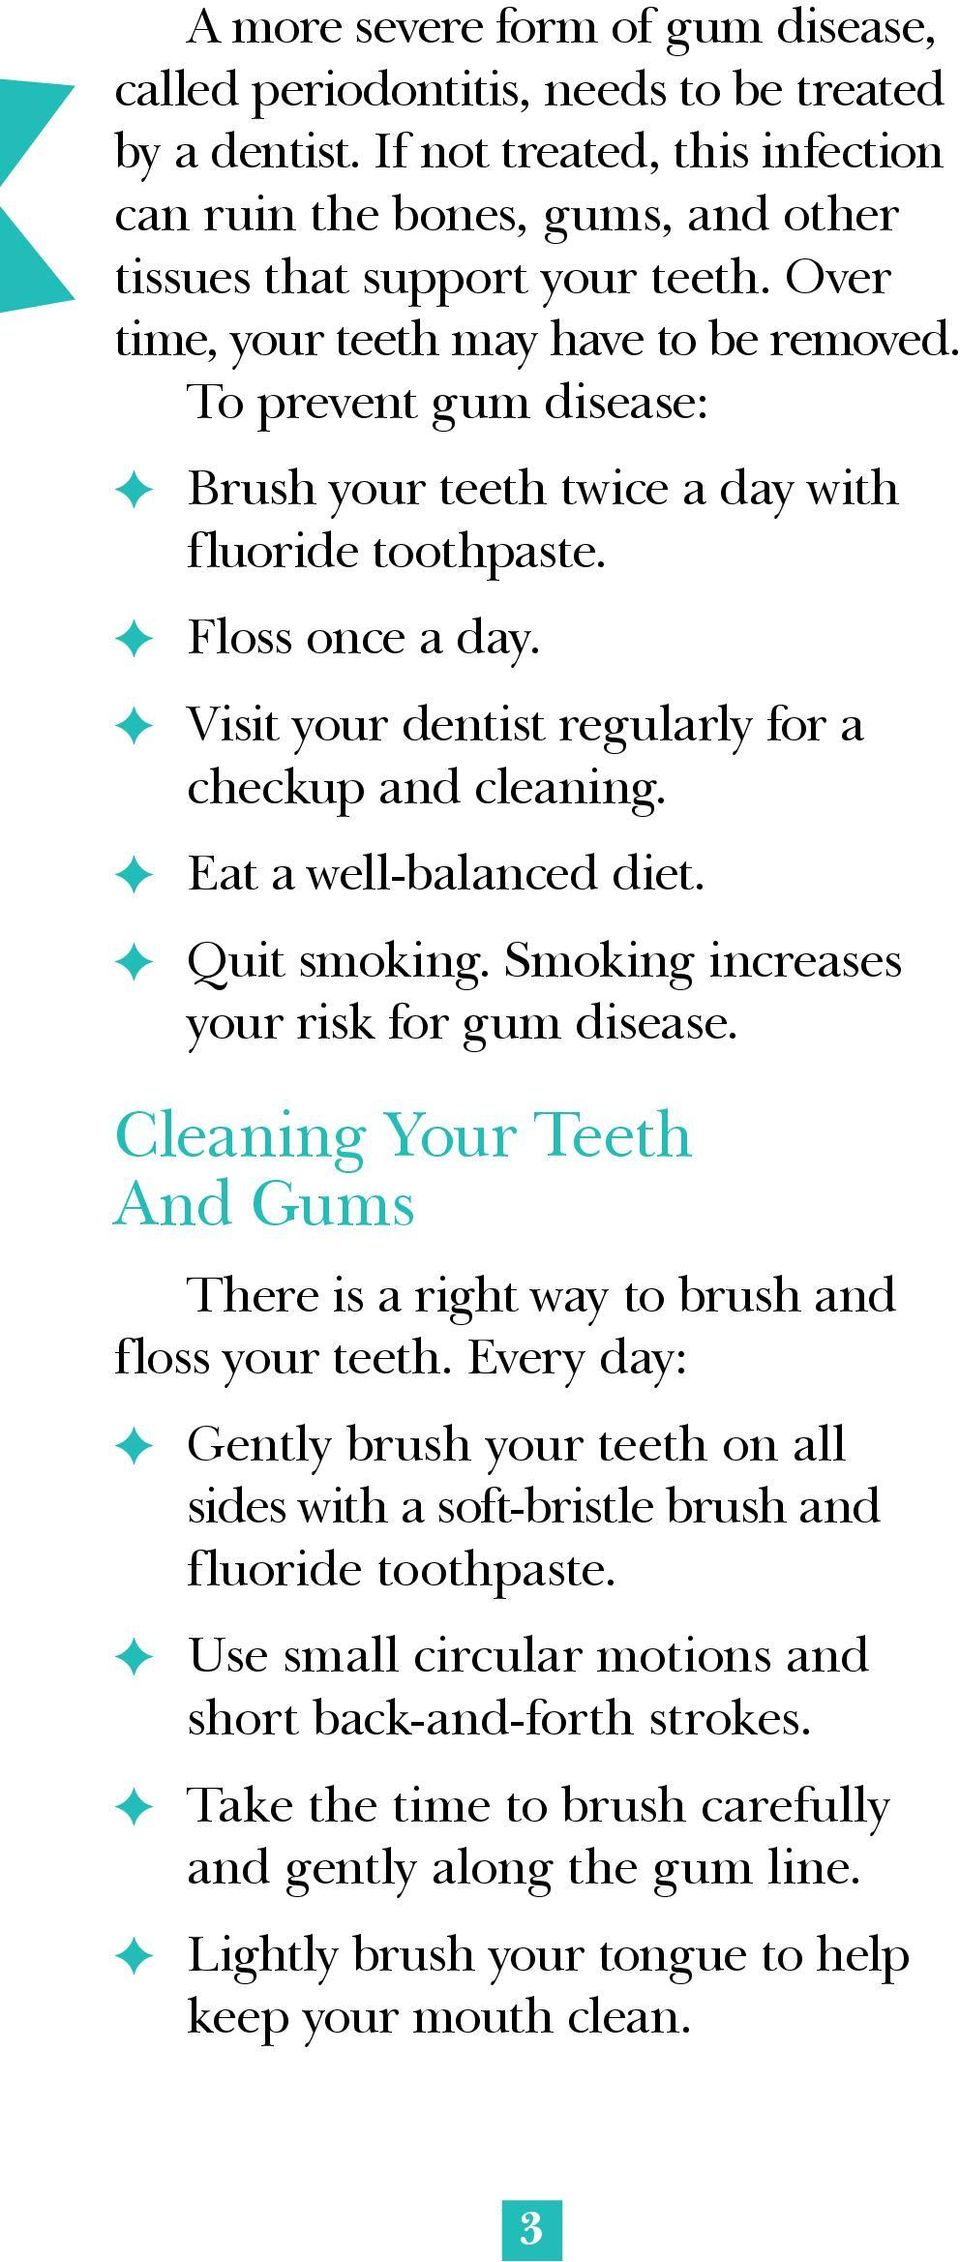 F Visit your dentist regularly for a checkup and cleaning. F Eat a well-balanced diet. F Quit smoking. Smoking increases your risk for gum disease.